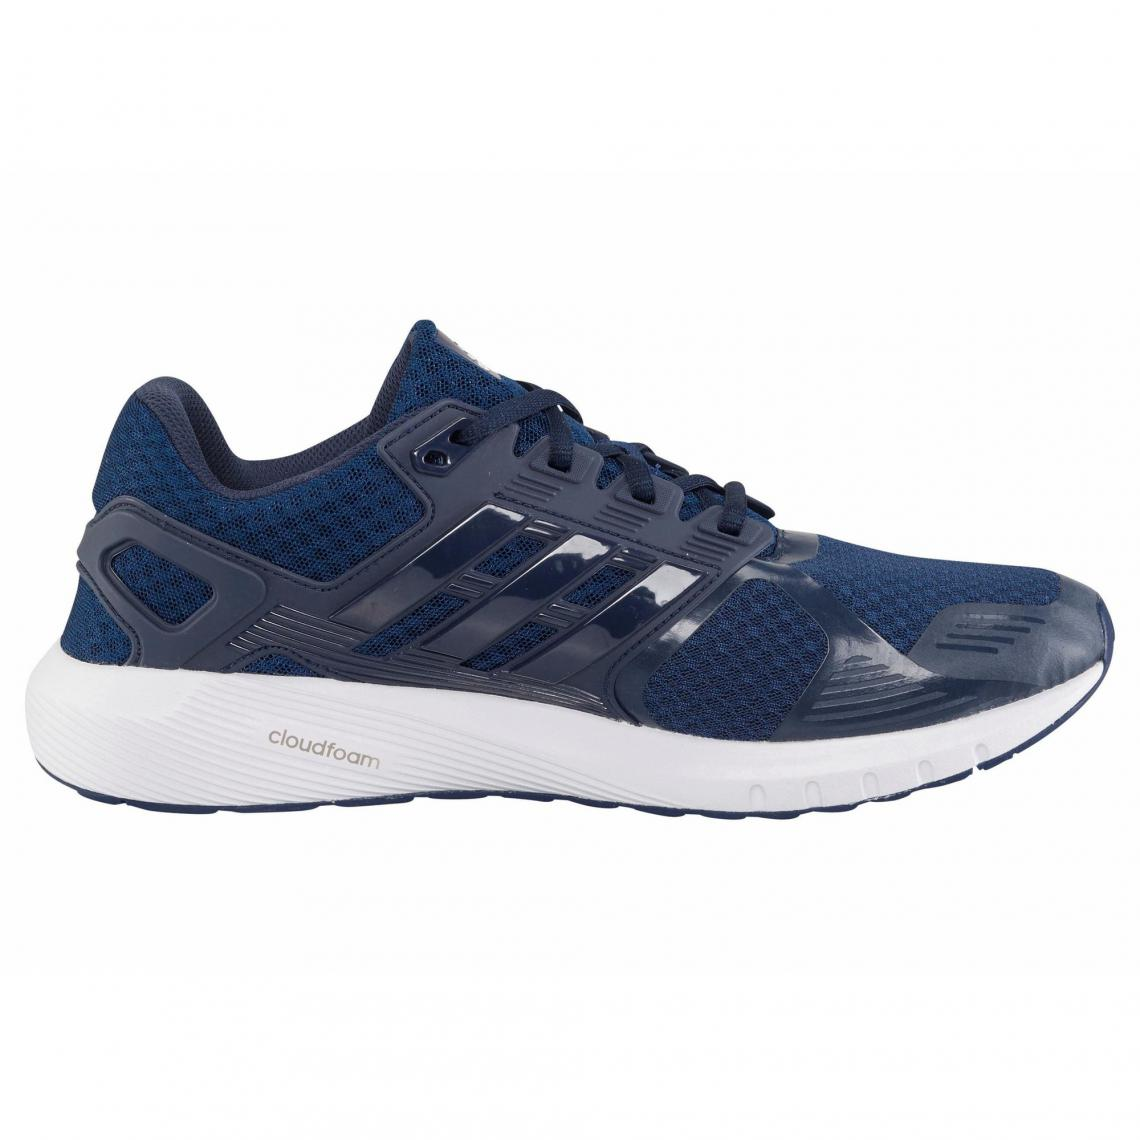 Homme 8 Course Performance Chaussures M Duramo Trainer De Adidas fYy6gb7v